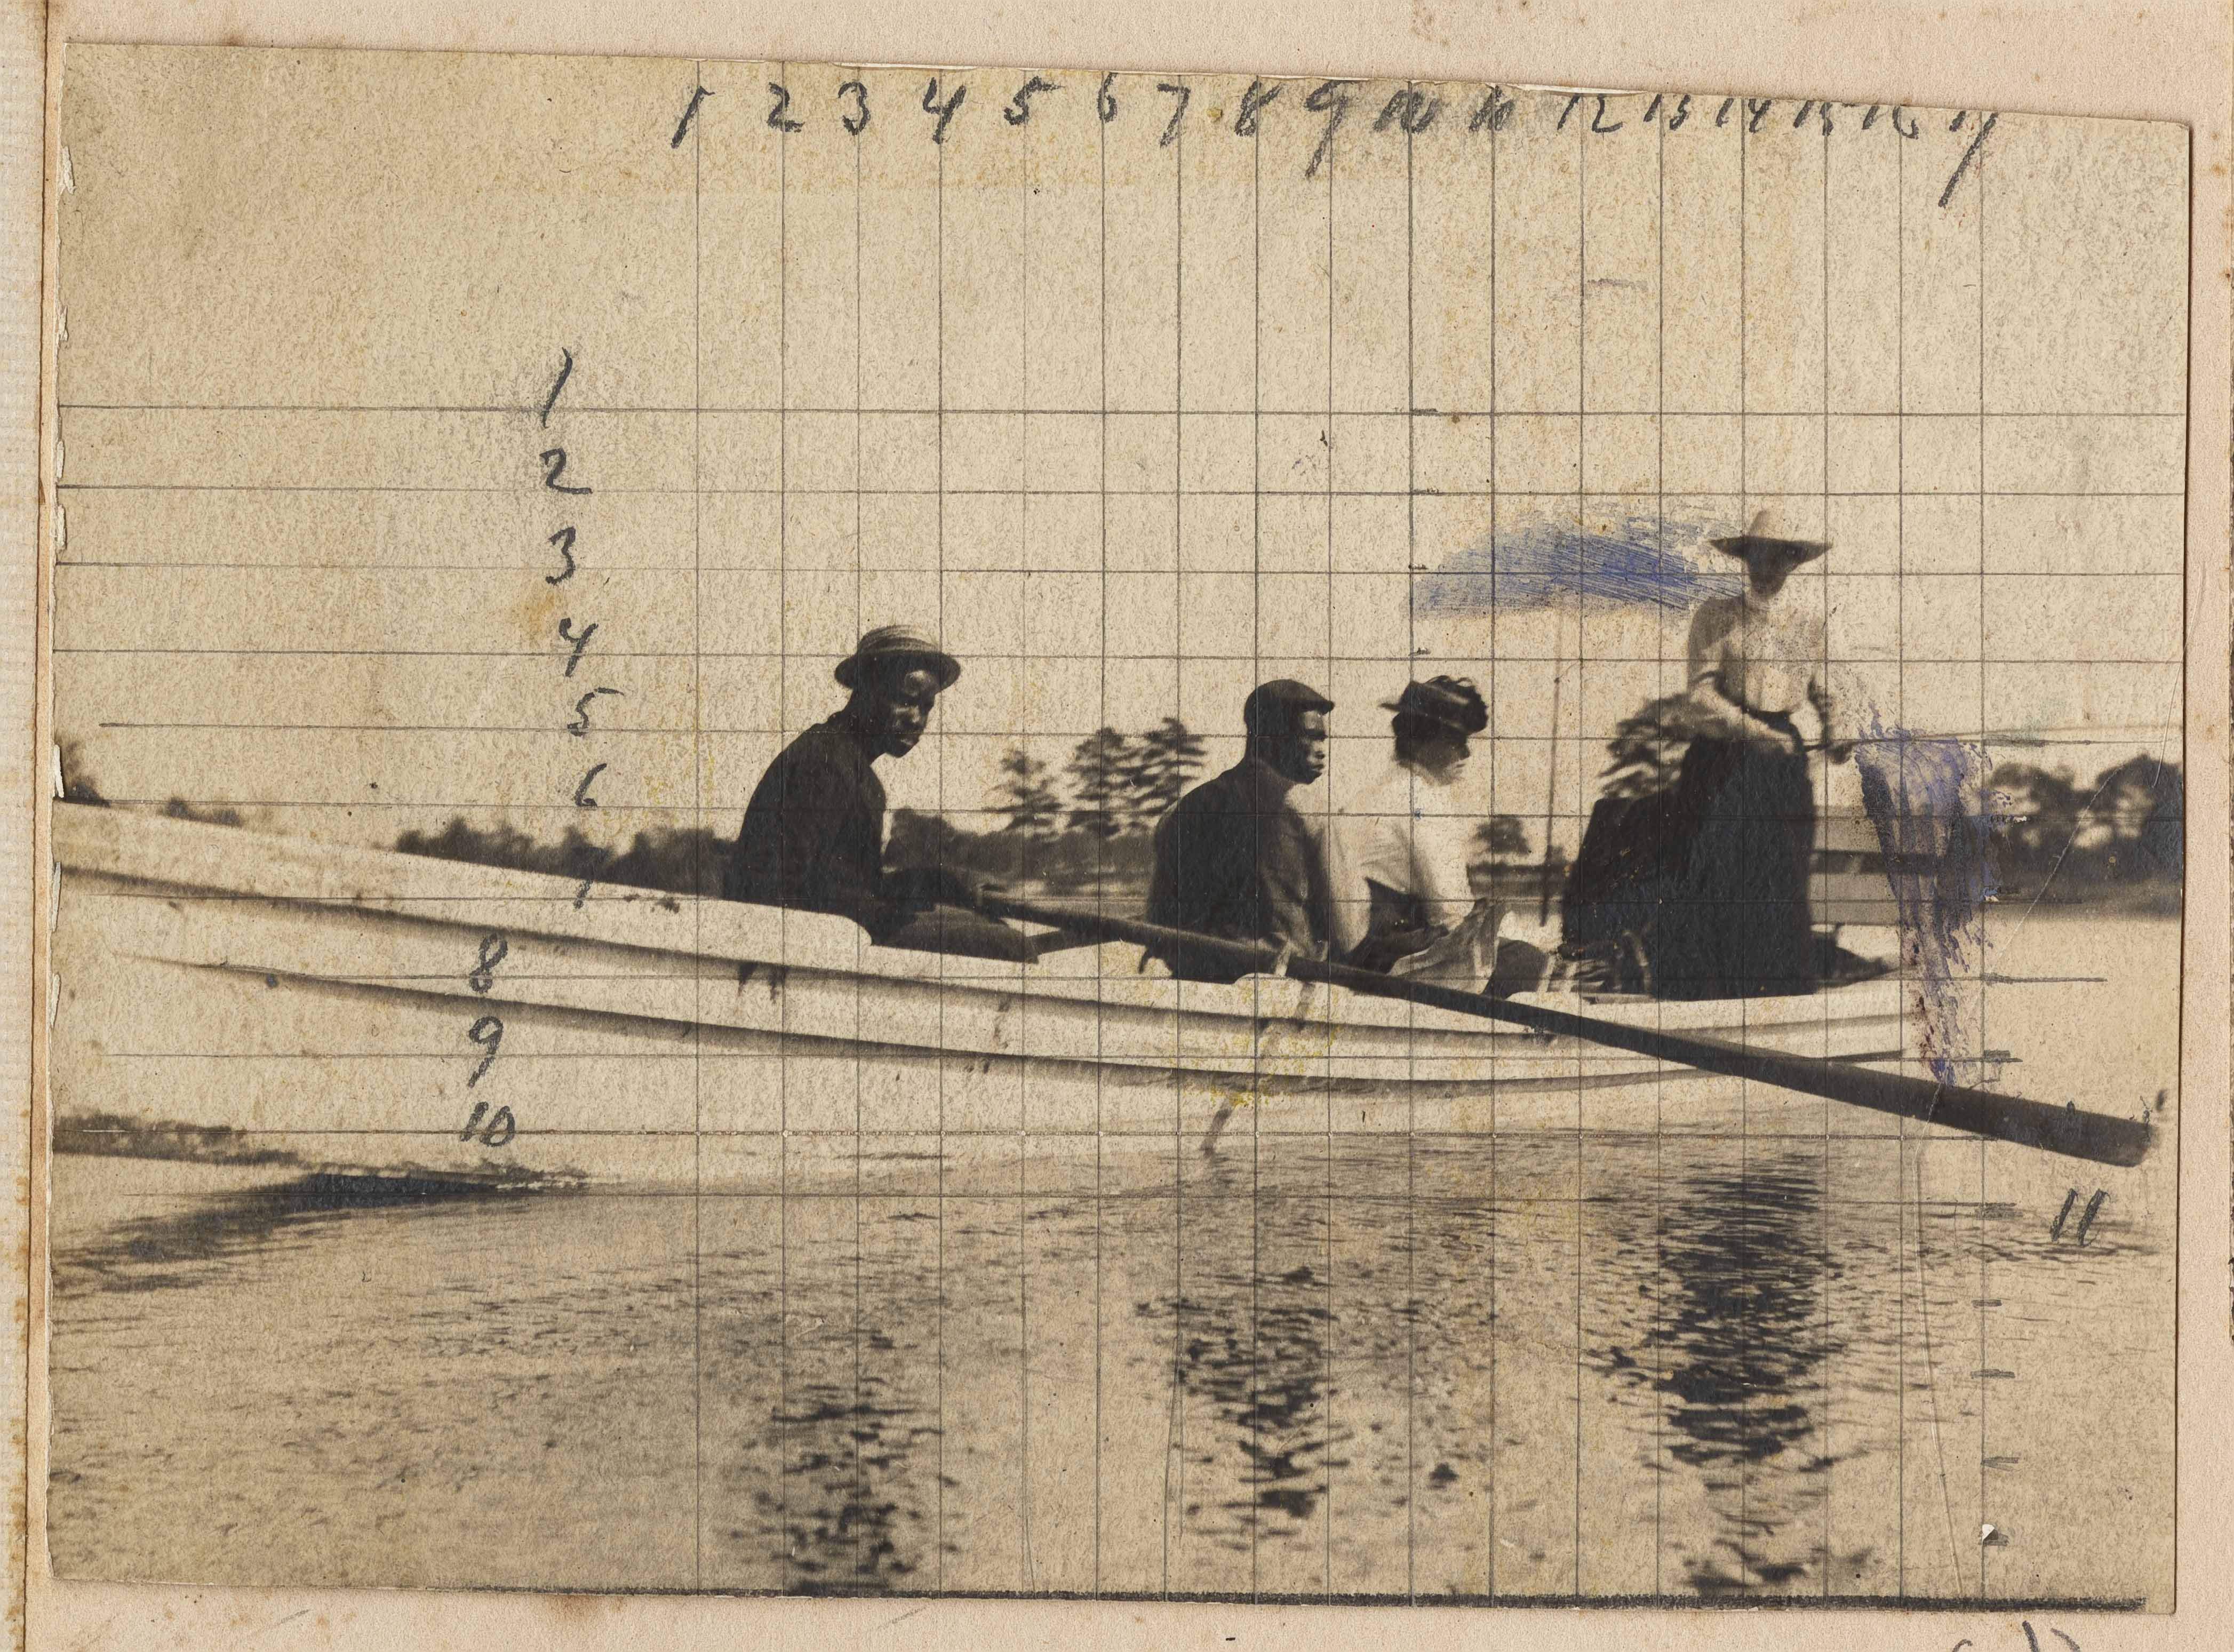 Four people in a boat